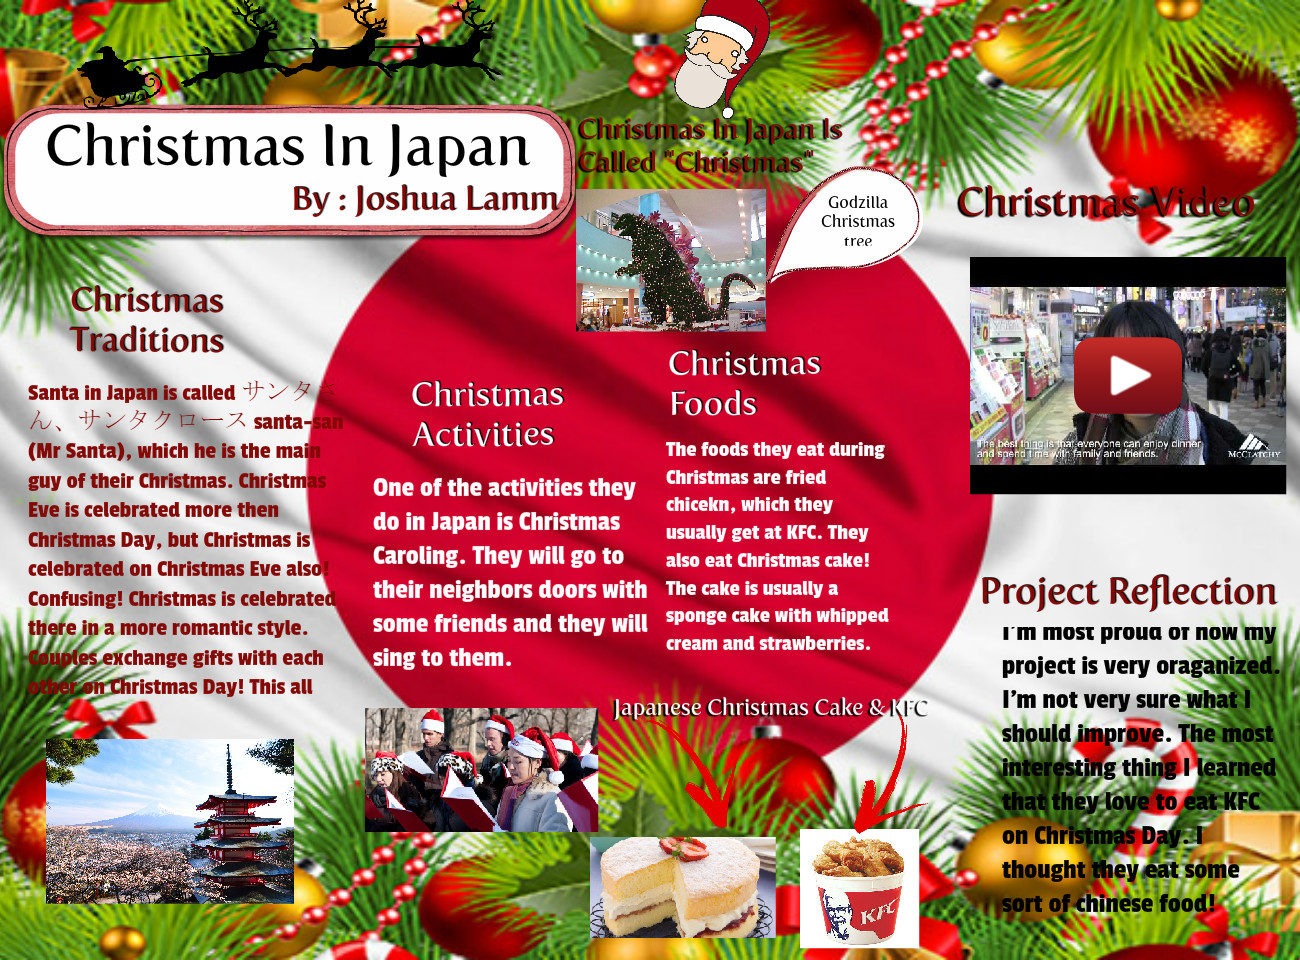 [2015] Joshua Lamm: Christmas in Japan